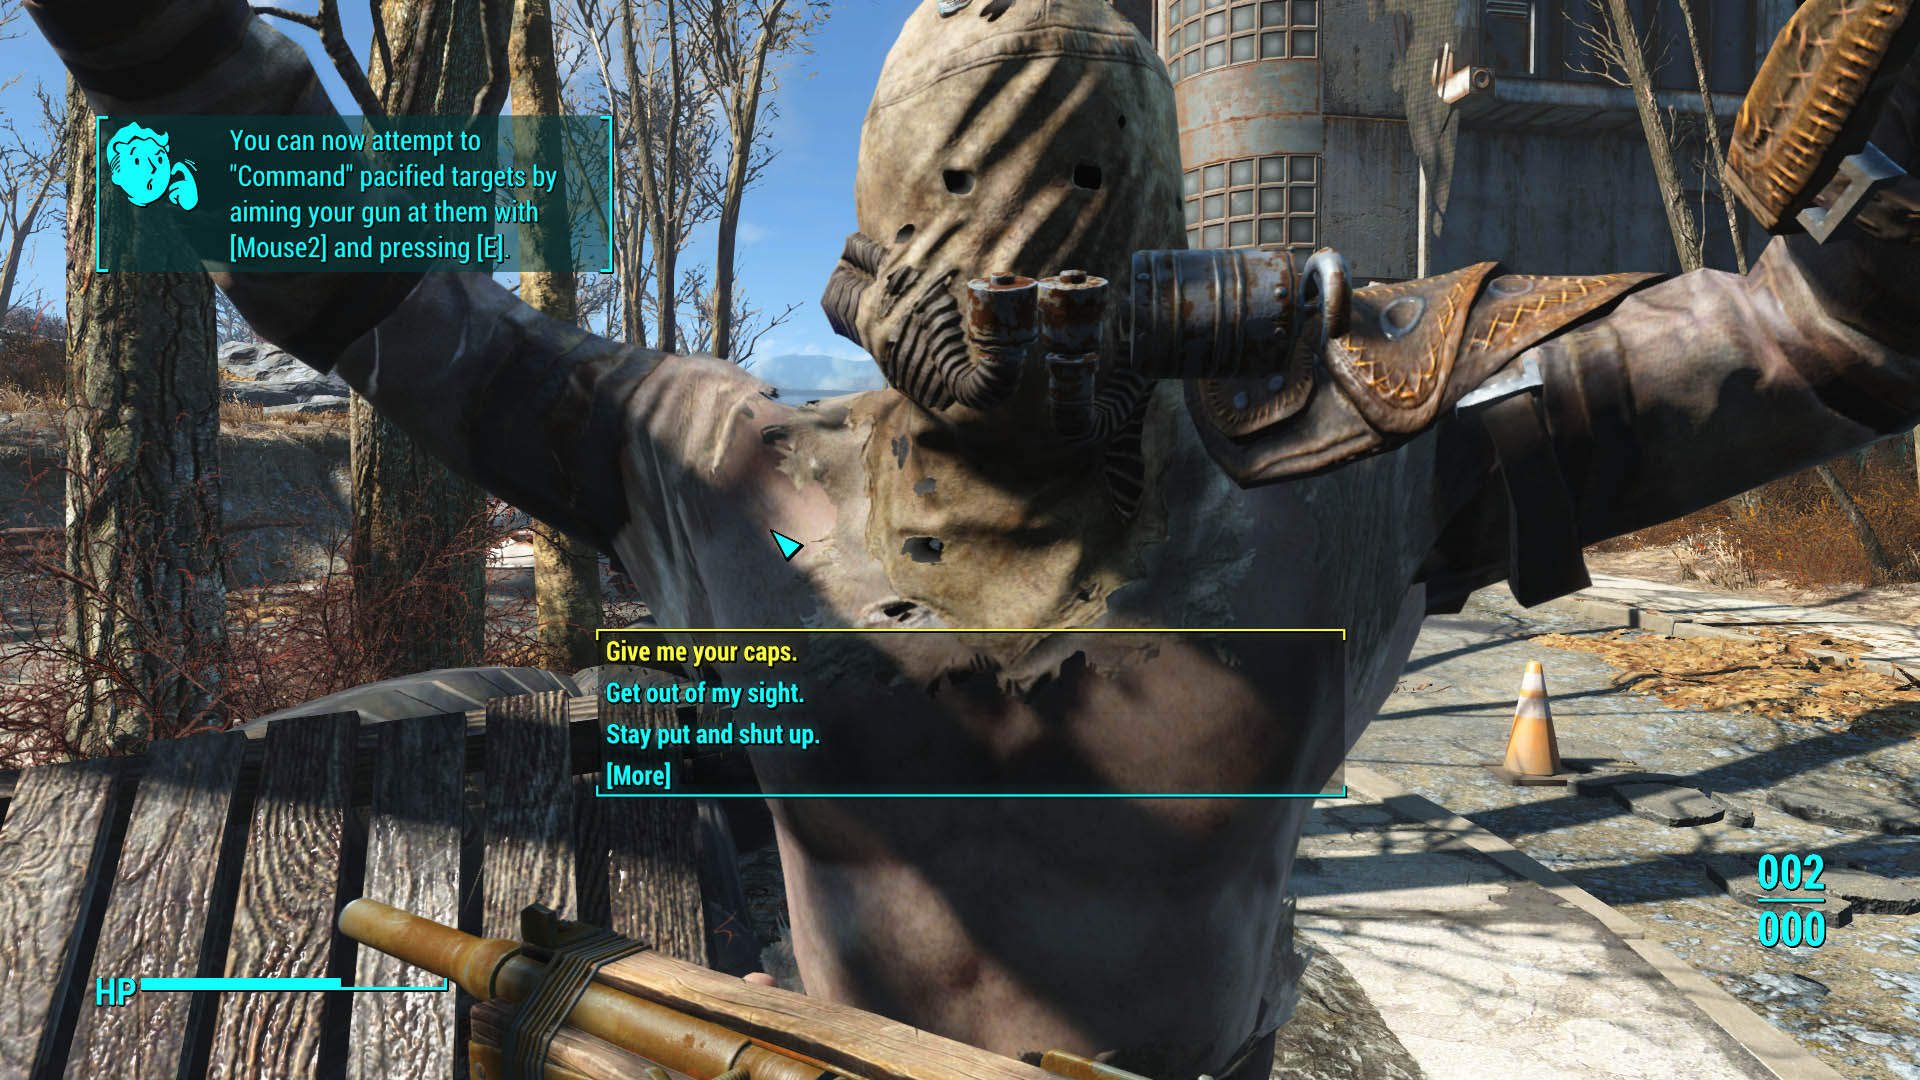 Fallout Intimidation Overhaul Mod Turns You Into Armed Robber | The